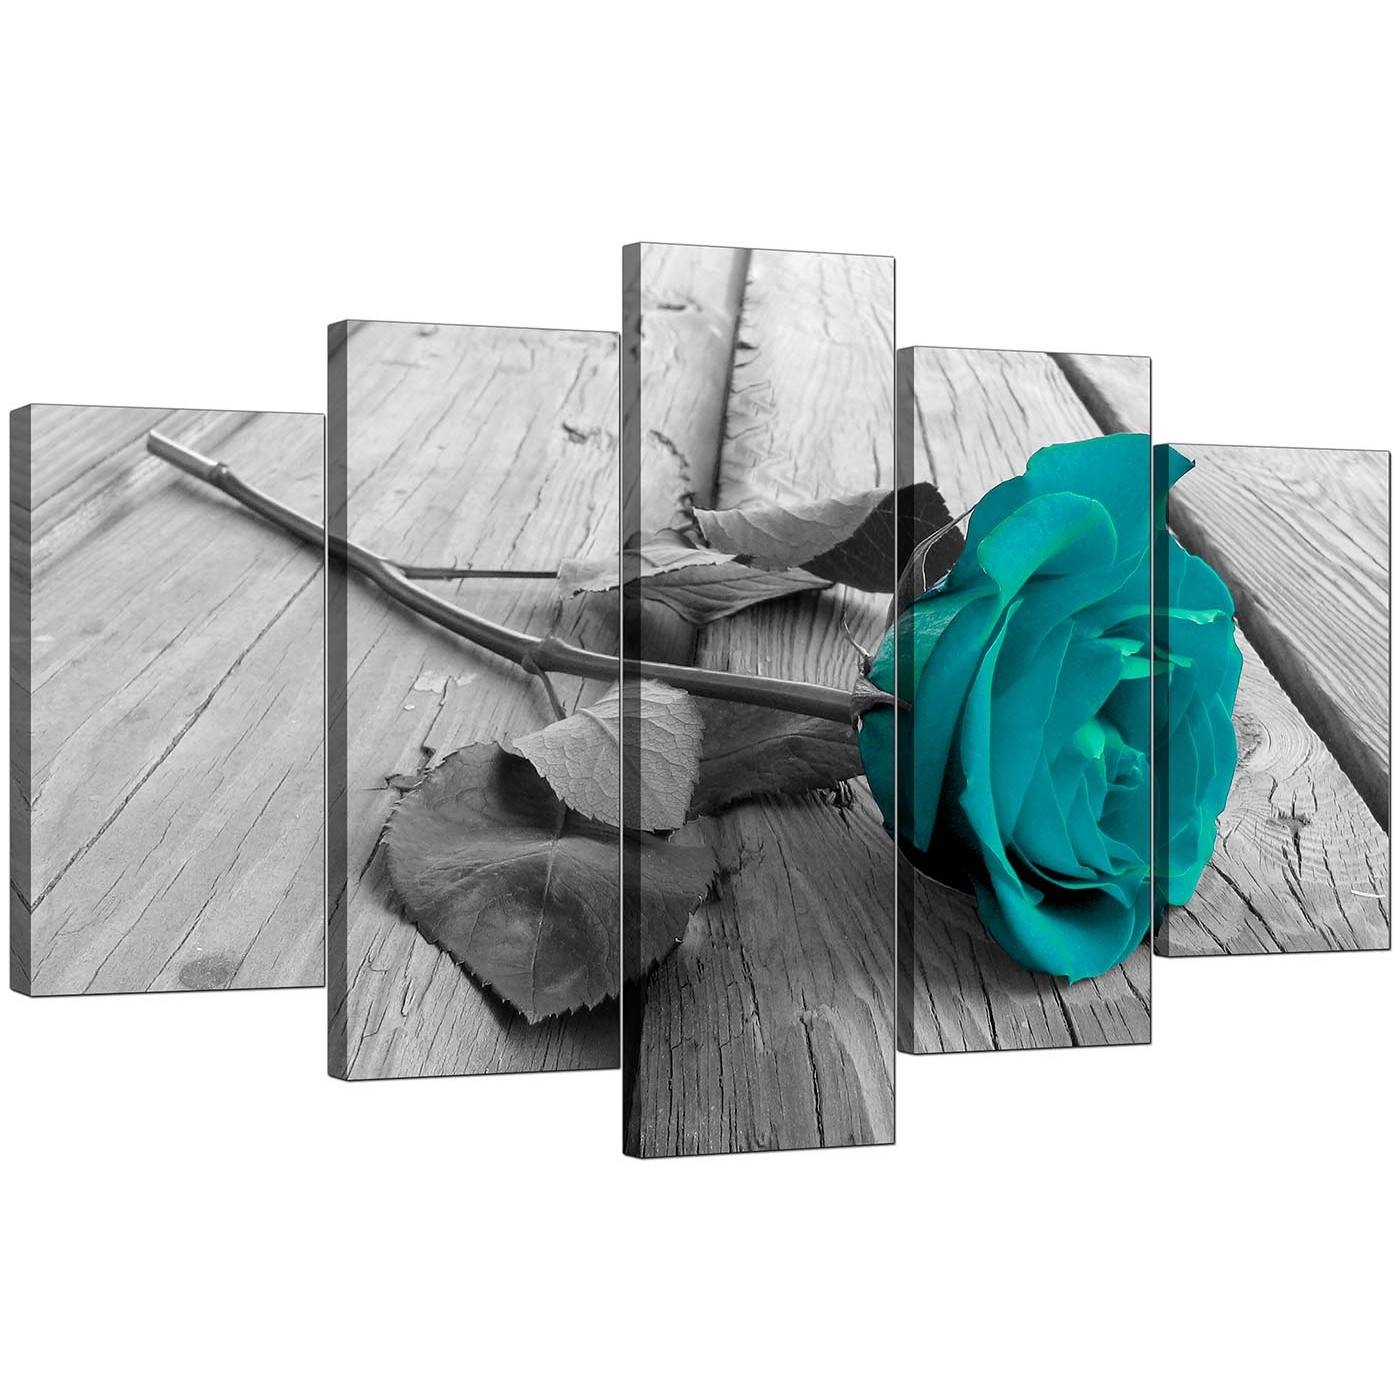 Extra Large Teal Rose Canvas Prints Set Of 5 In Black & White Inside Latest Cheap Black And White Wall Art (Gallery 13 of 20)